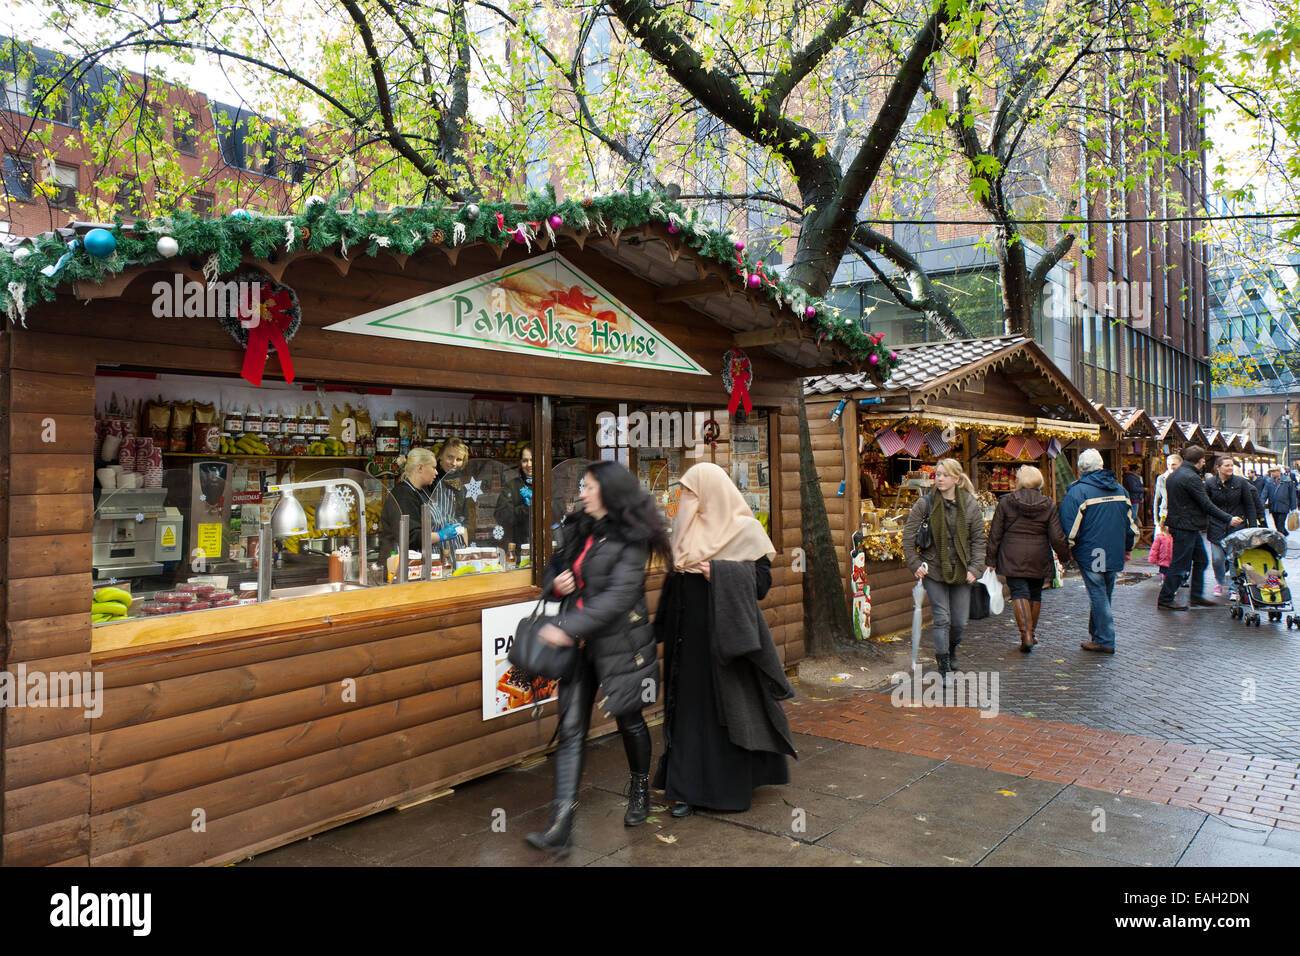 Market traders Manchester UK, 14th November, 2014.  Opening Day of Christmas market attracting shoppers from the - Stock Image